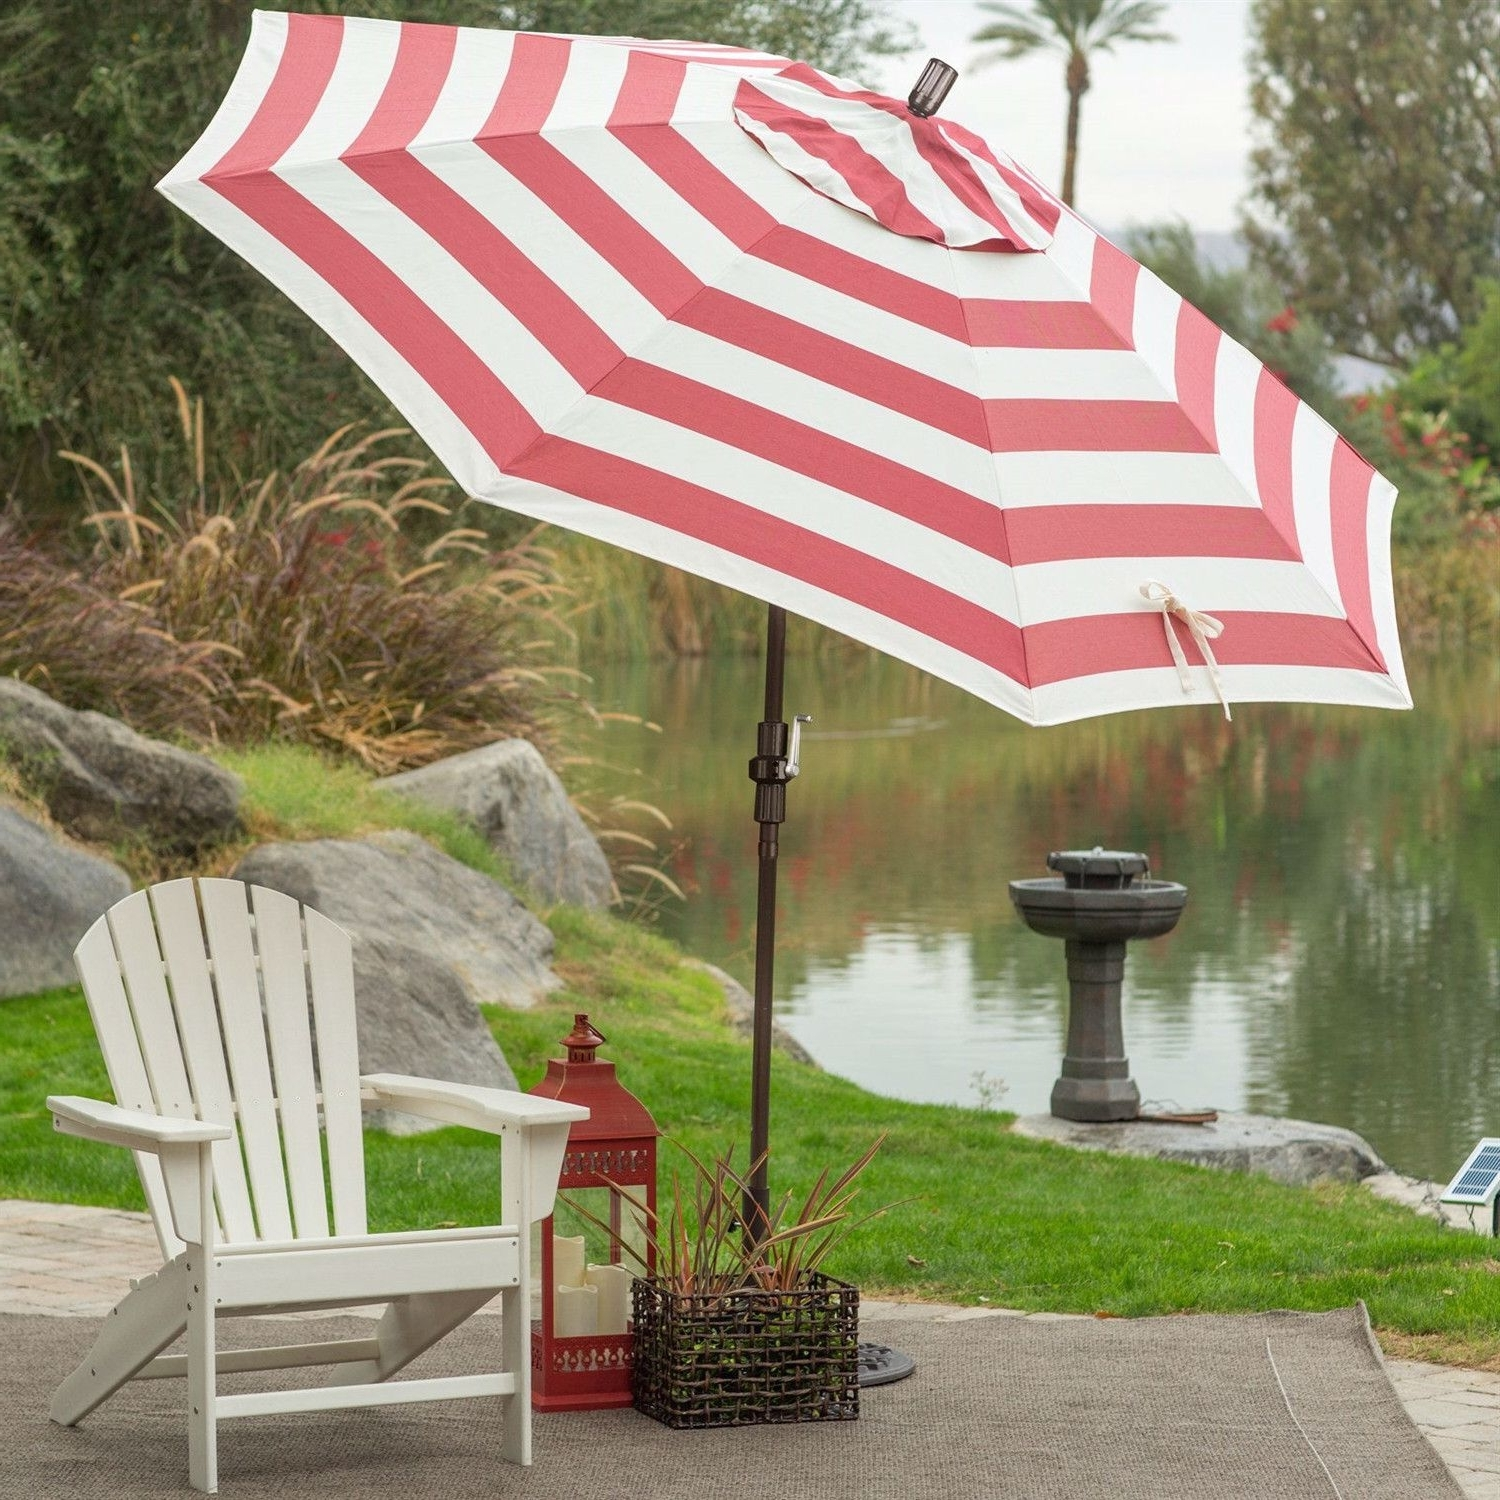 Patio Umbrellas With White Pole In Recent  (View 12 of 20)